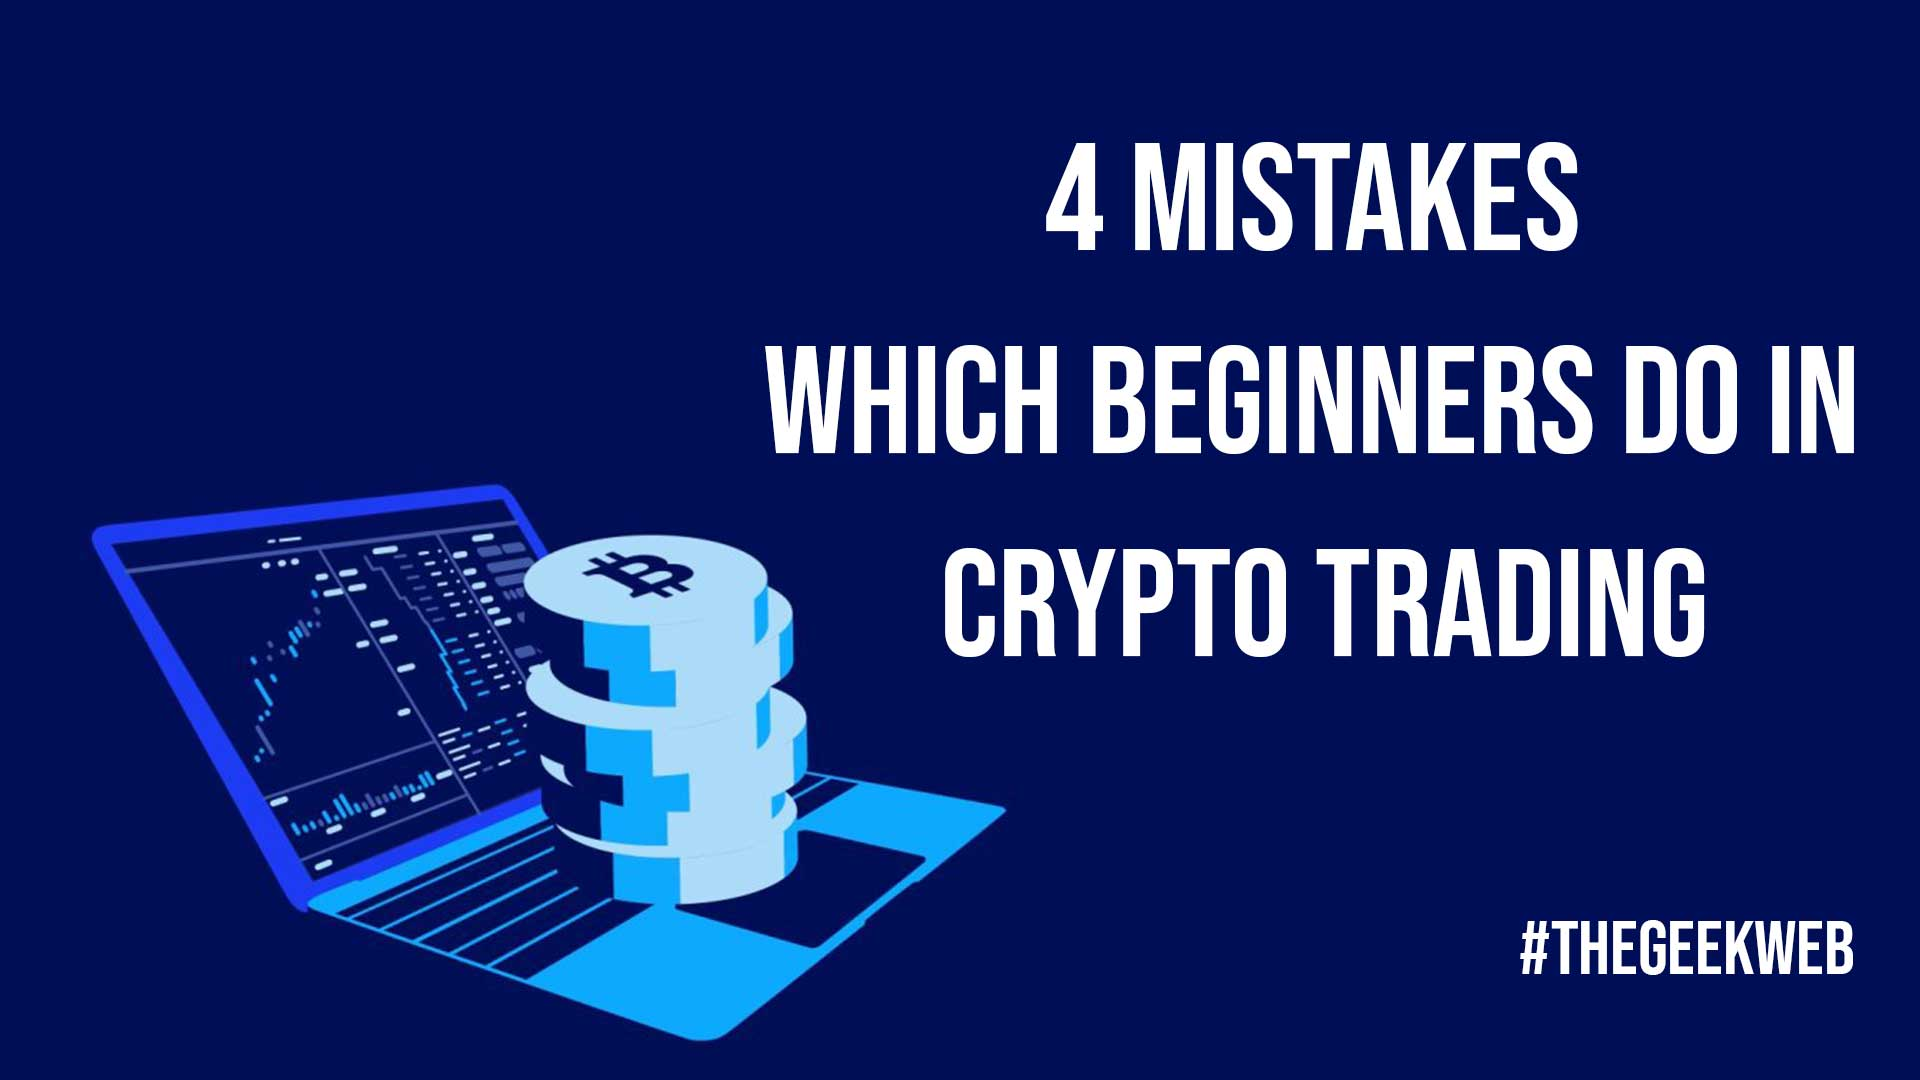 4 Mistakes Which Beginners do in Crypto Trading